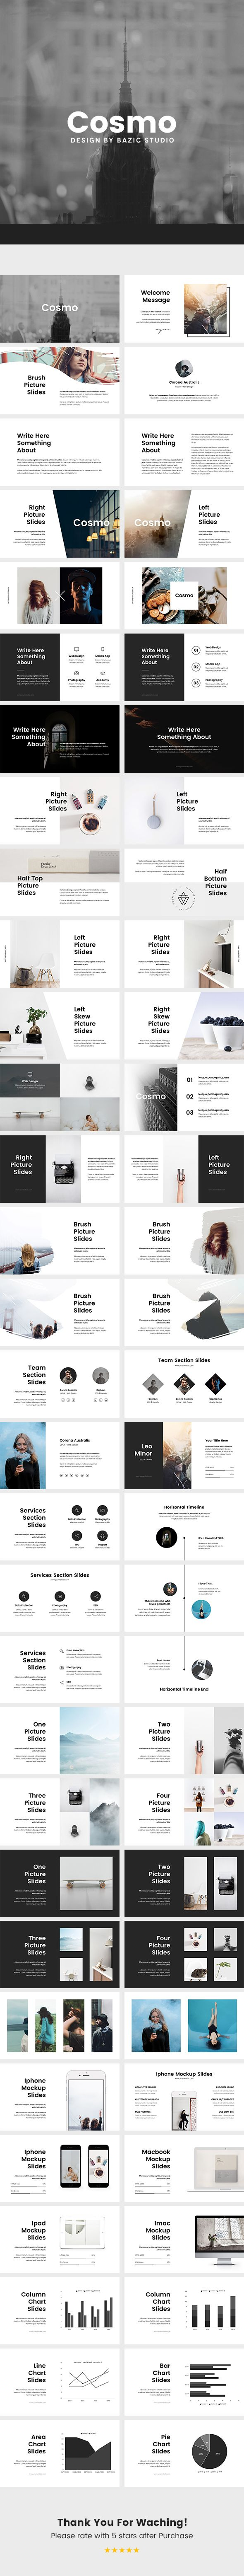 Cosmo Minimal Google Slides Template — Google Slides PPTX #chart #vector • Download ➝ https://graphicriver.net/item/cosmo-minimal-google-slides-template/18974266?ref=pxcr